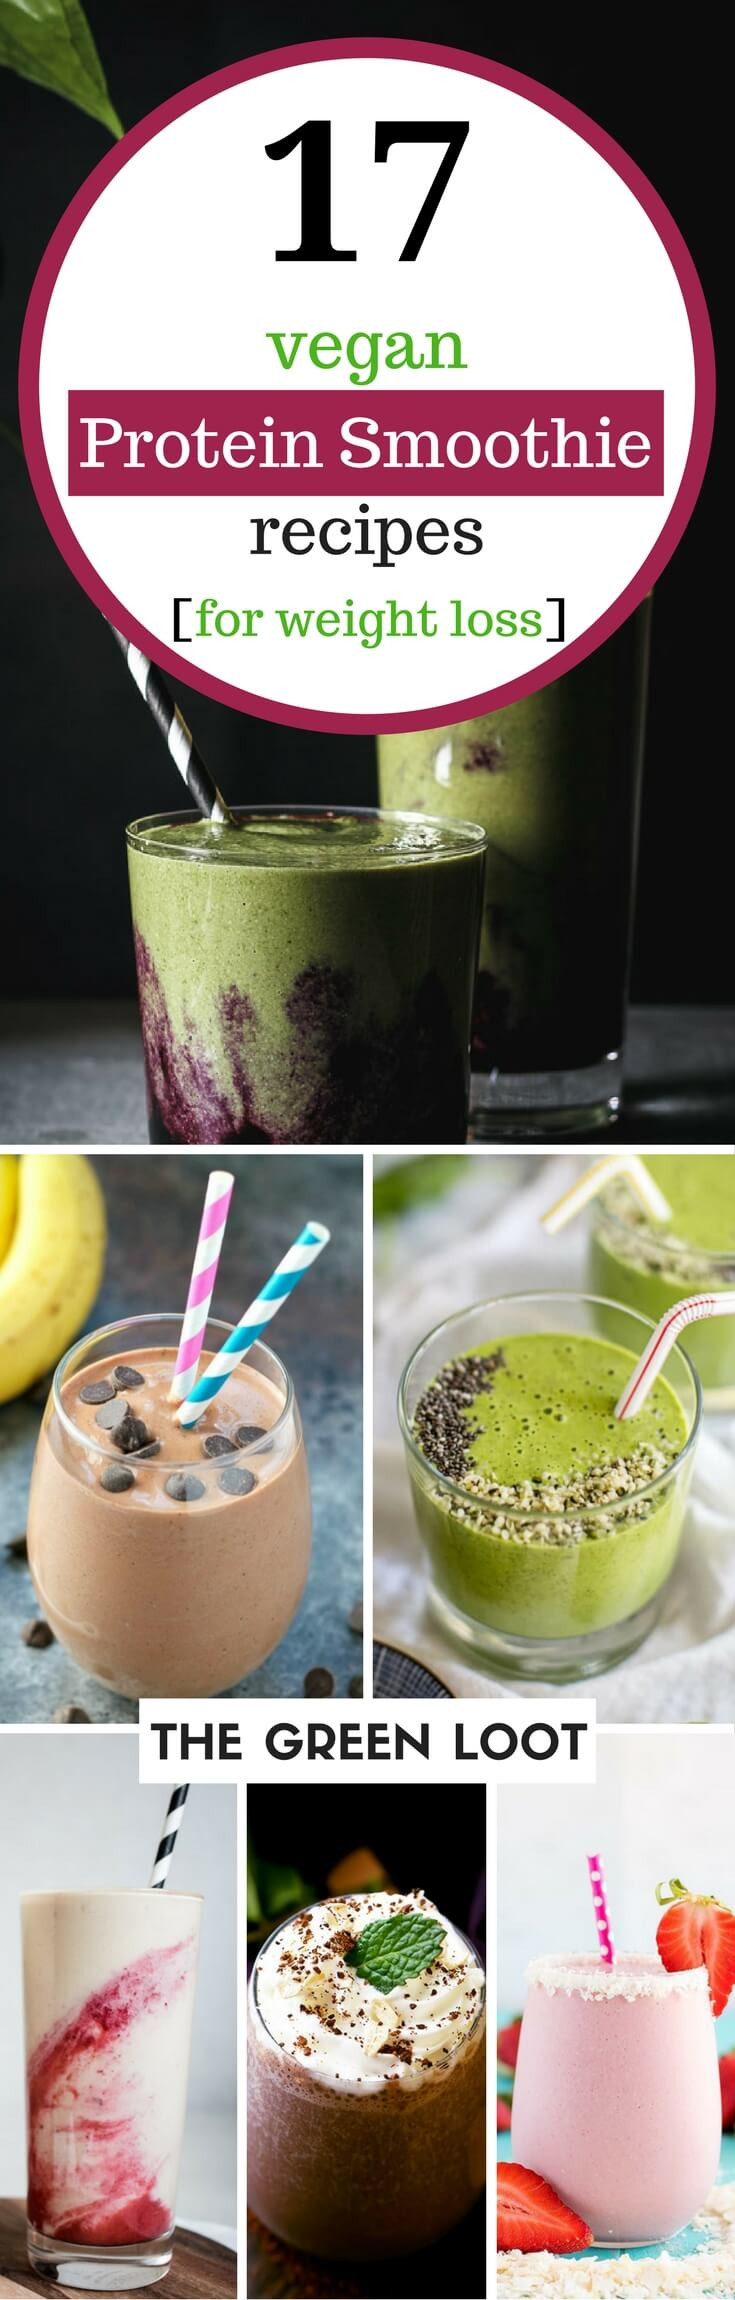 Healthy Smoothies After Workout  17 Tasty Vegan Protein Smoothie Recipes for Weight Loss